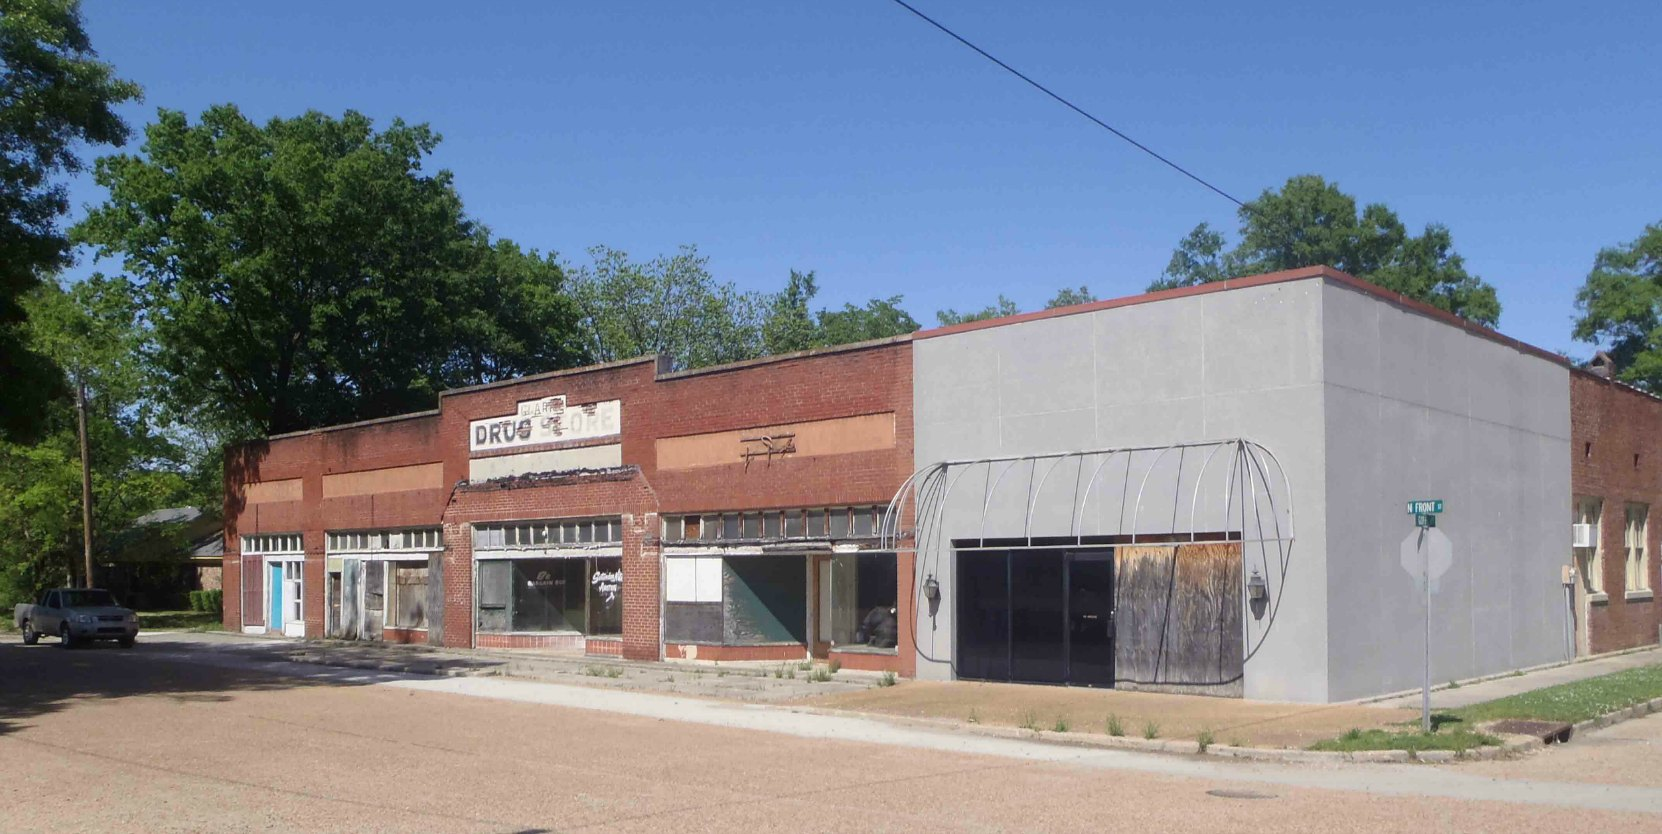 Downtown buildings in Merigold, Mississippi. This was a drug store but it is now vacant.